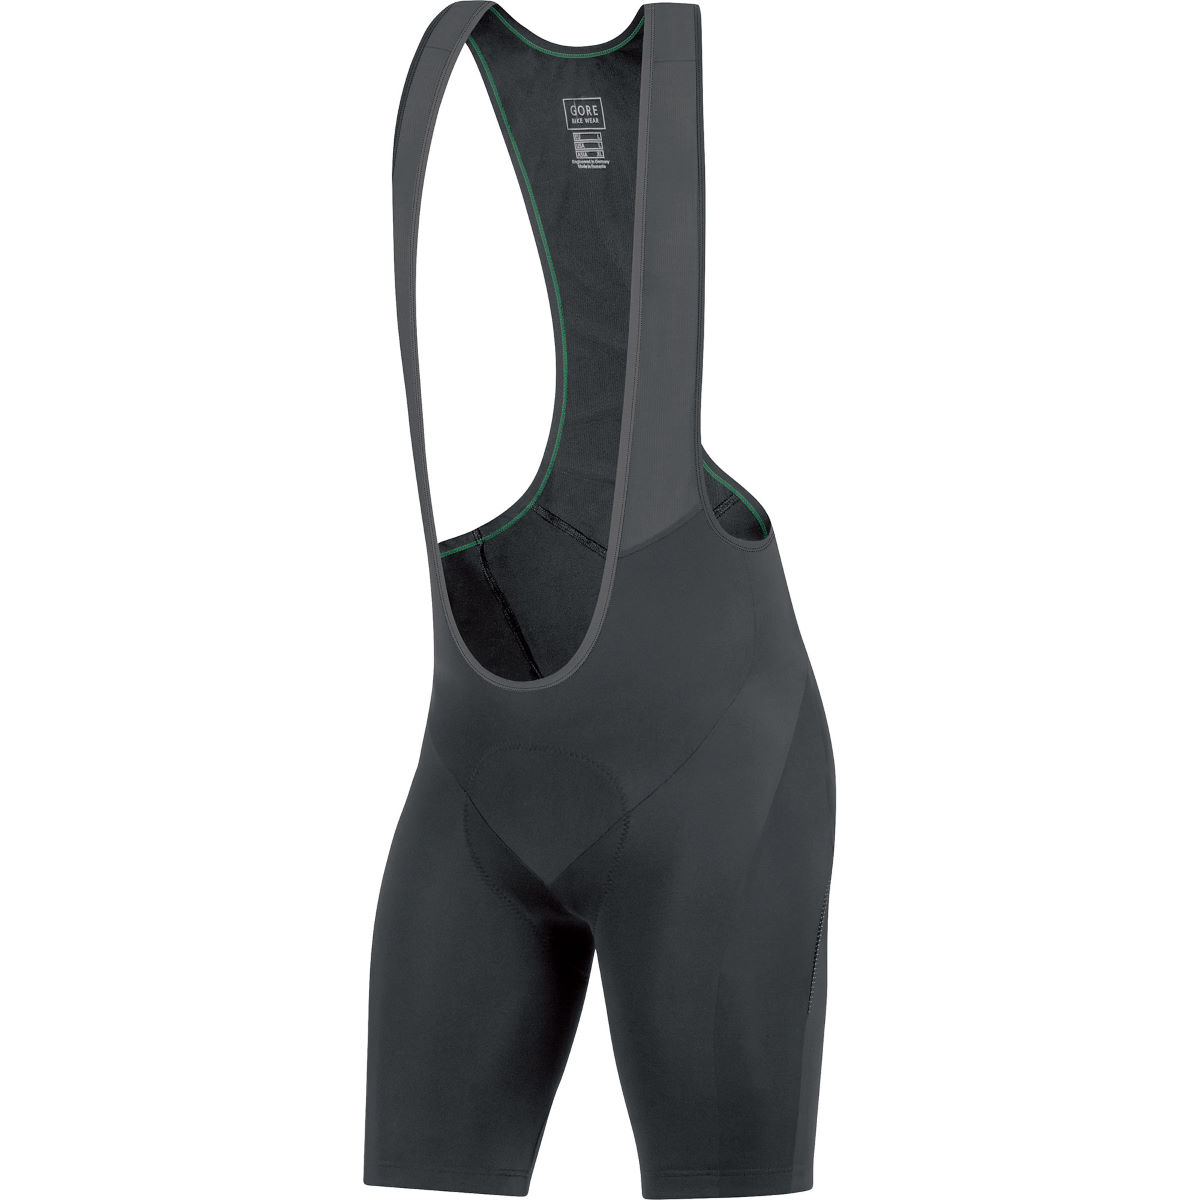 Cuissard court à bretelles Gore Bike Wear Element+ - M Noir/Noir Cuissards en lycra